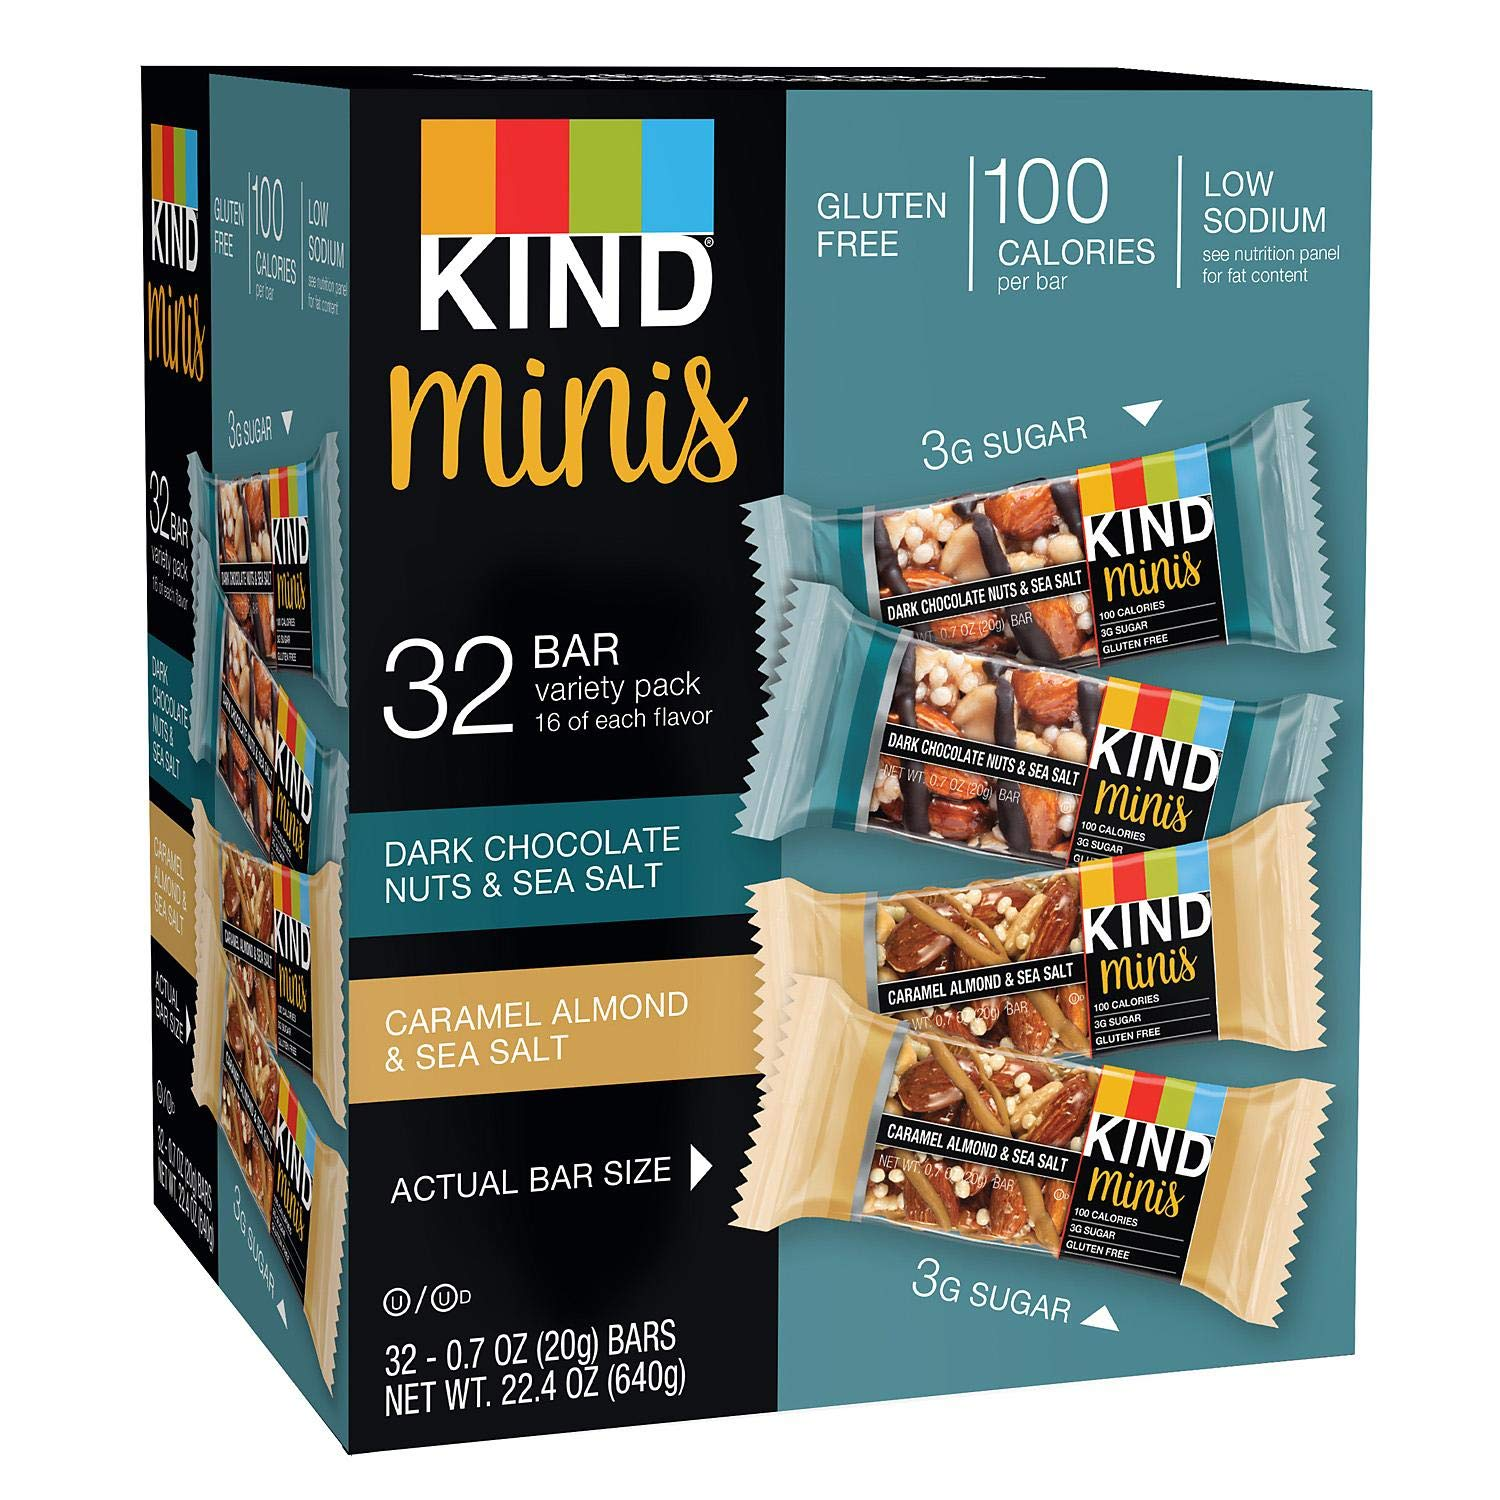 Minis Variety Pack (32 Count - 2 Pack) by KIND (Image #1)